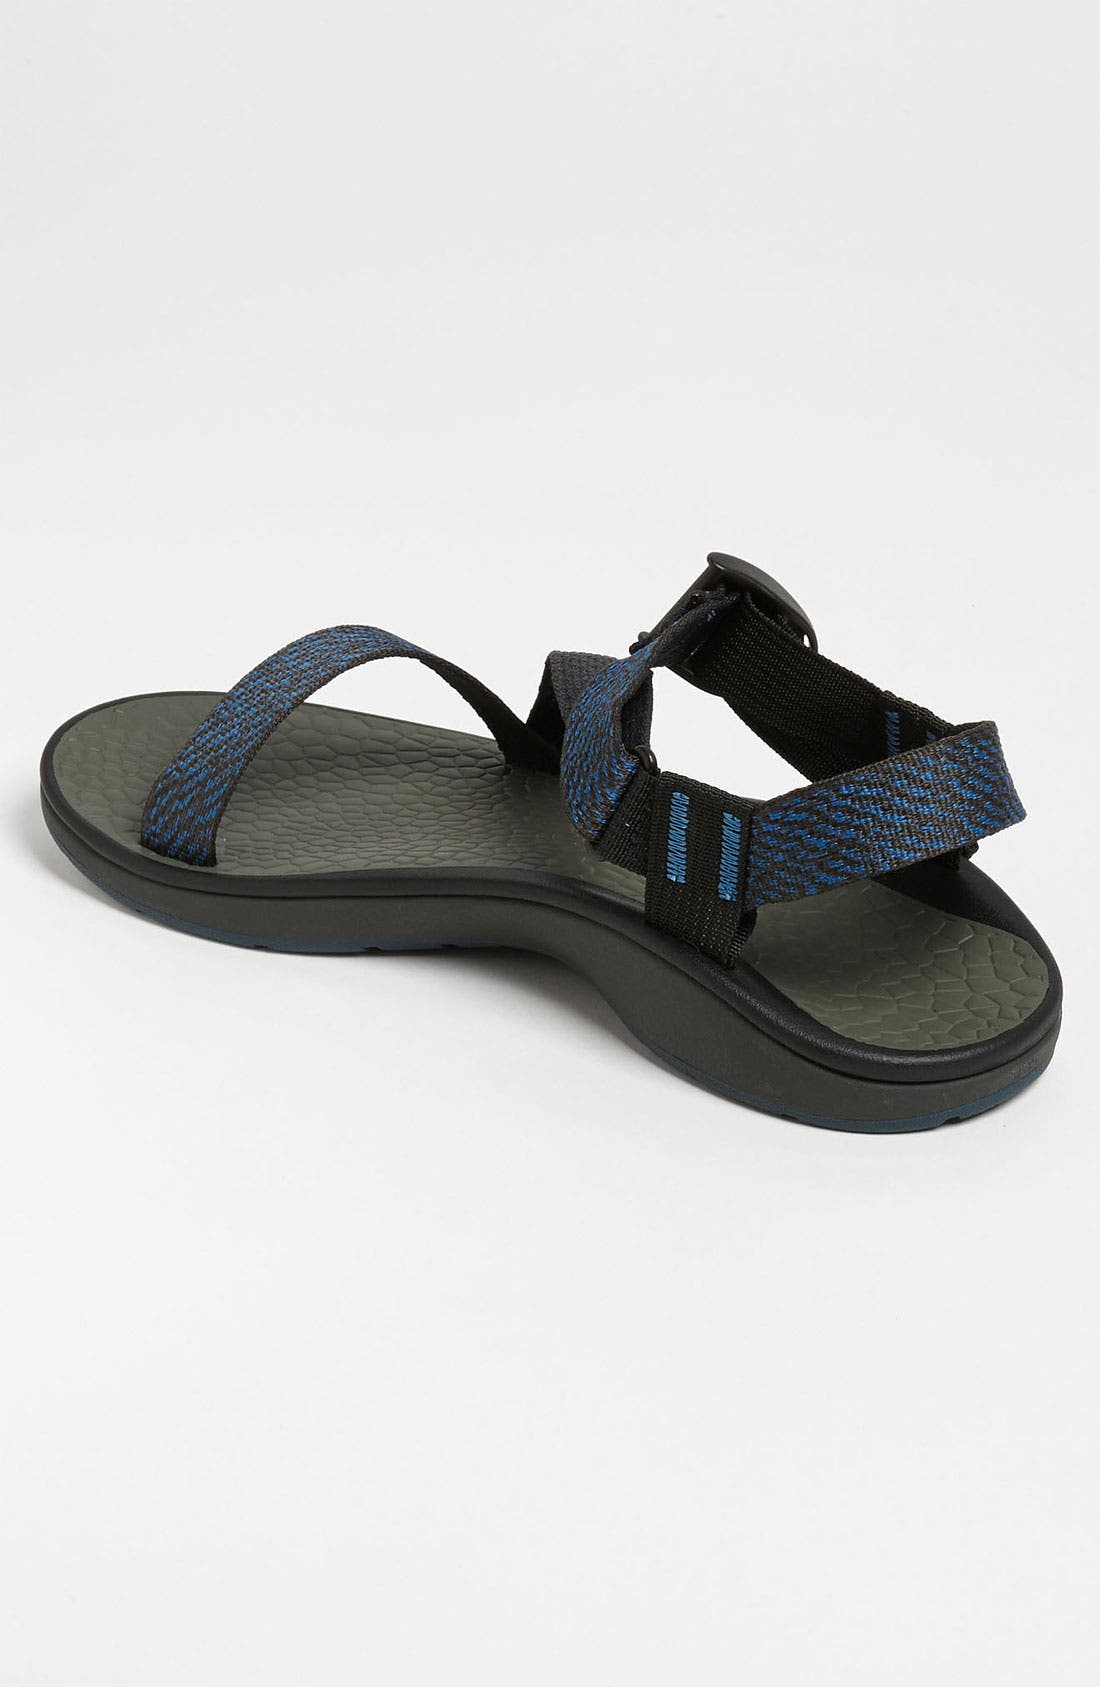 Alternate Image 2  - Chaco 'Mighty' Sandal